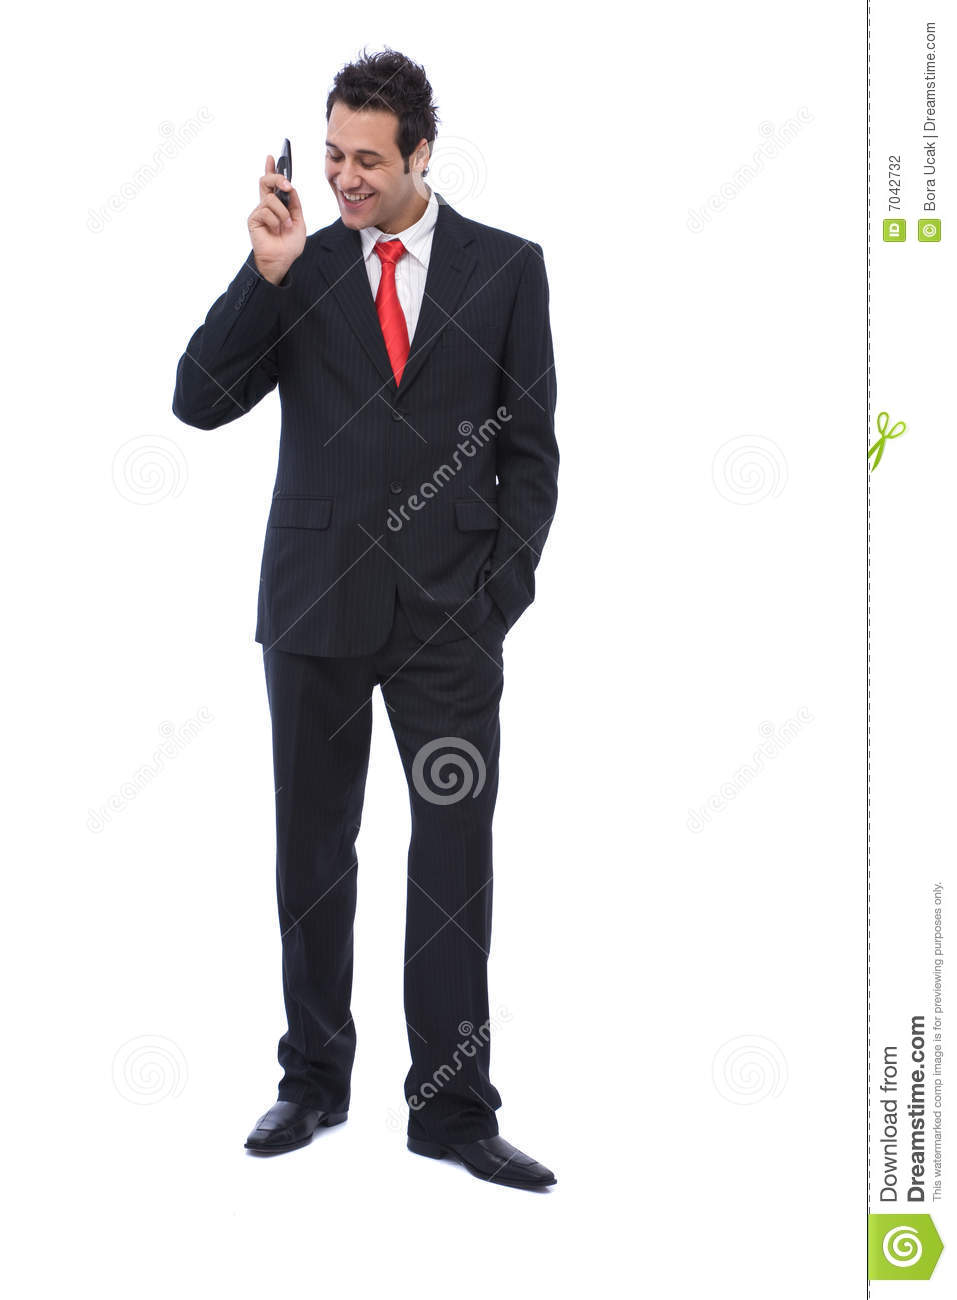 how to talk professionally on the phone